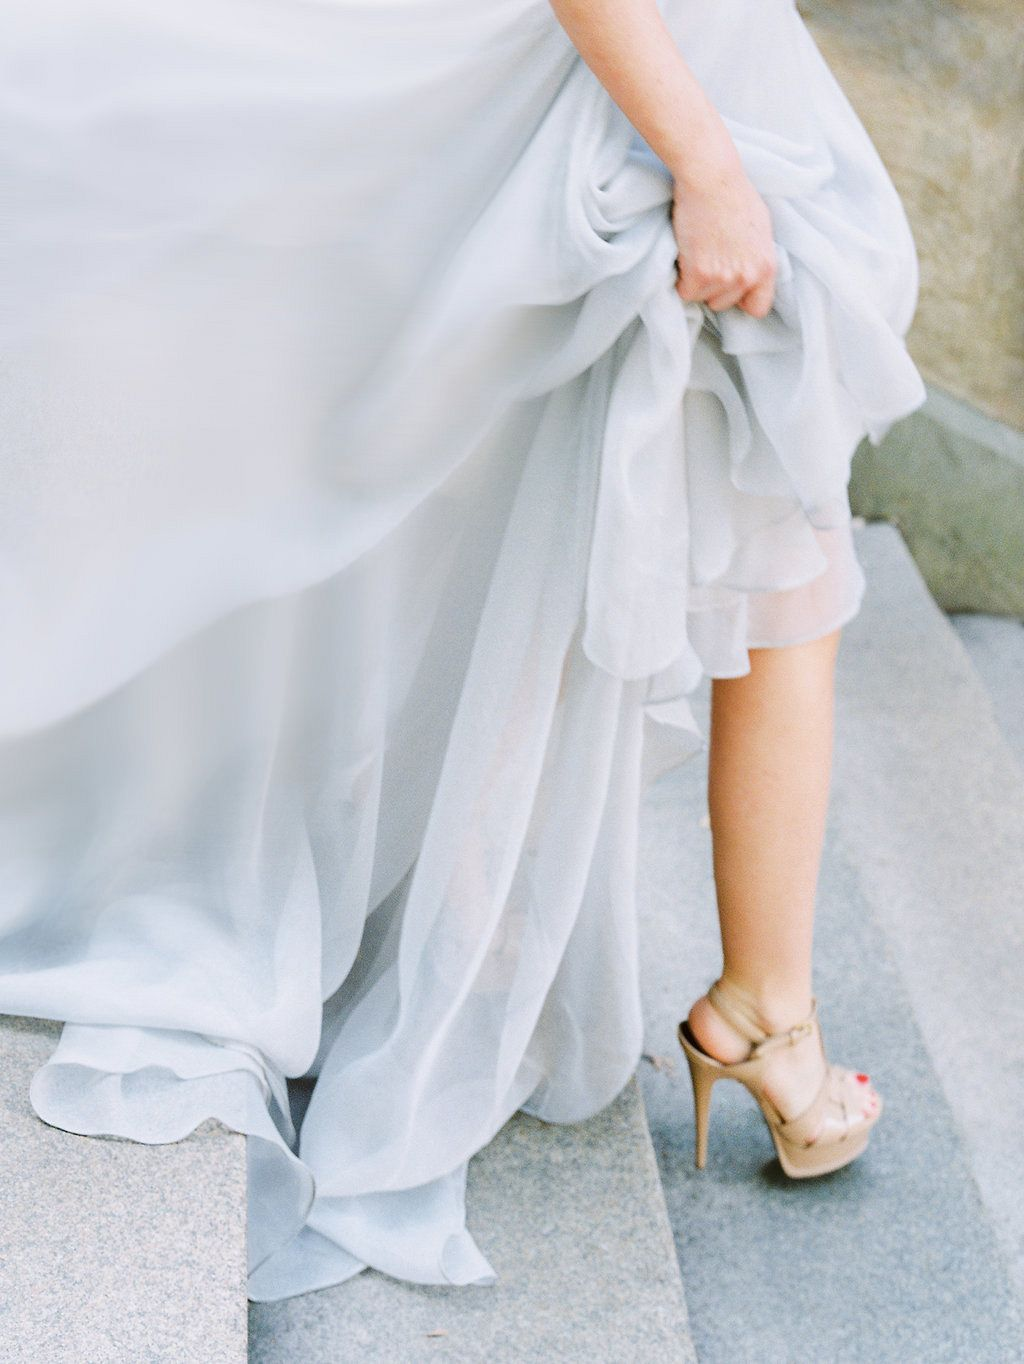 Central park elopement in a pale blue wedding gown wedding